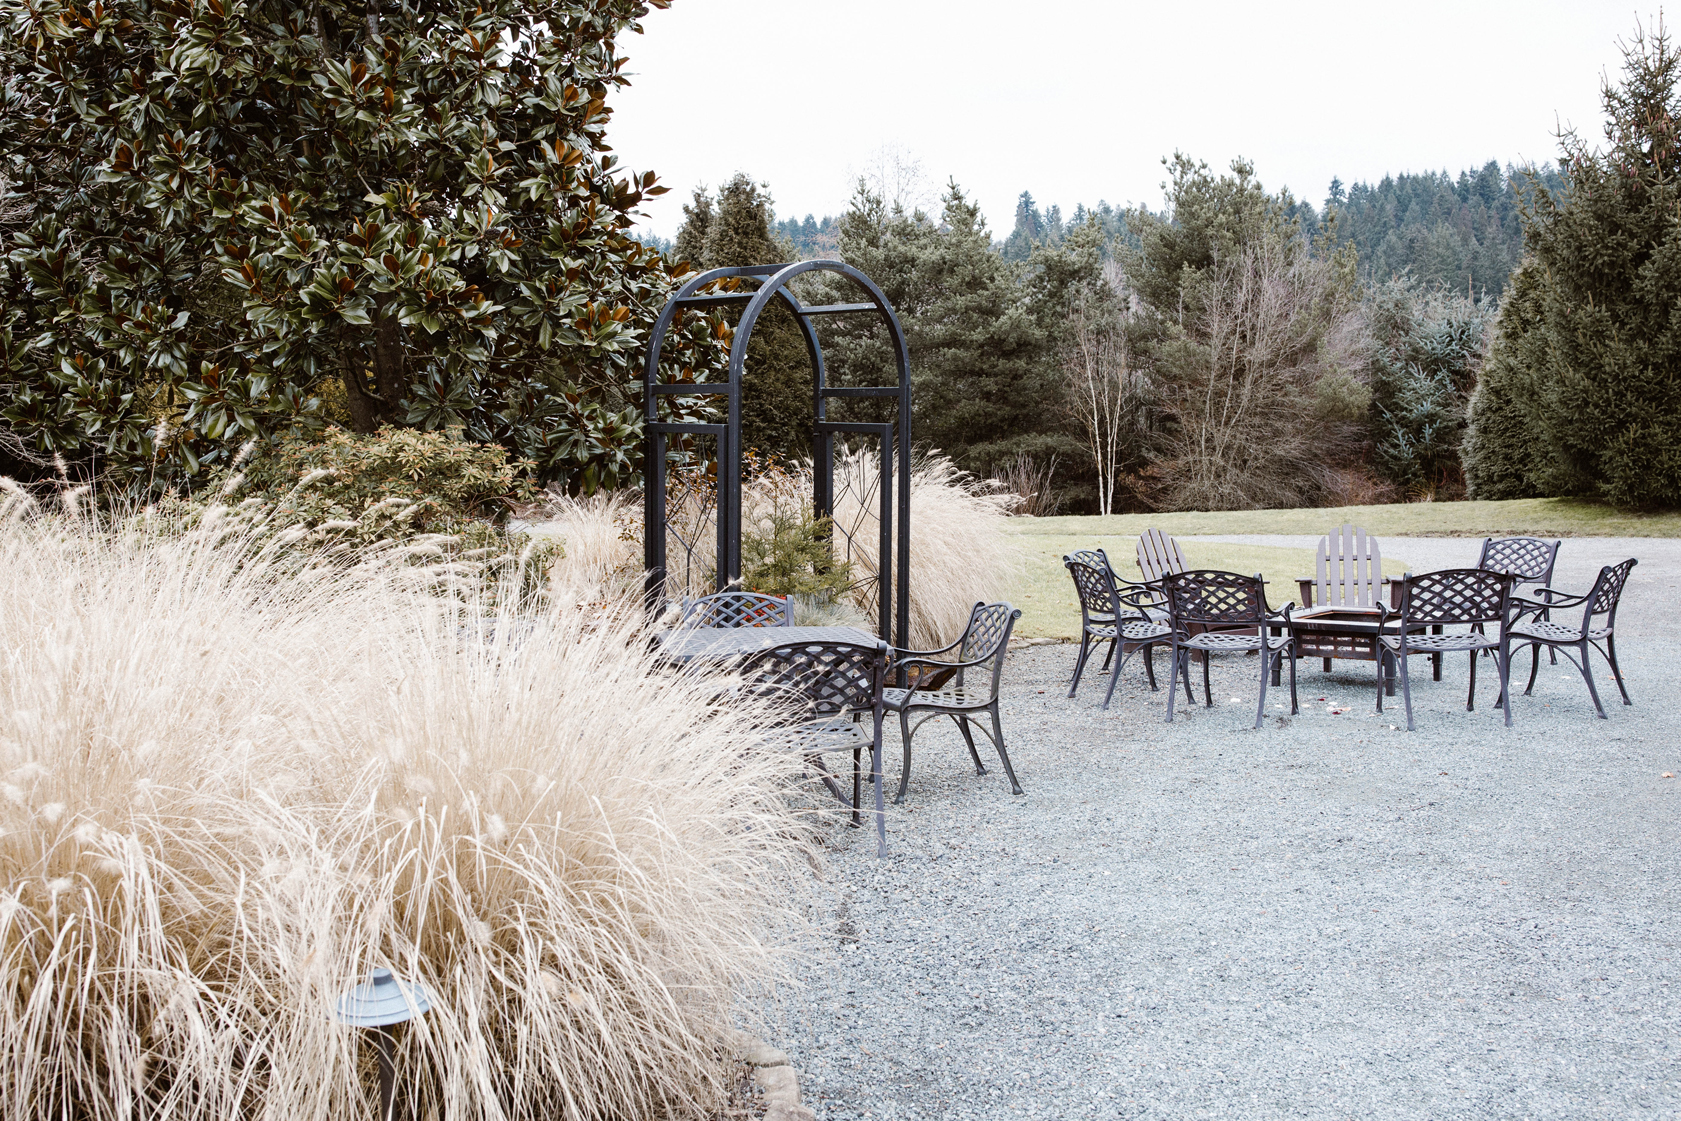 Willows+Lodge_Woodinville_2017_Weddings+In+Woodinville205.jpg